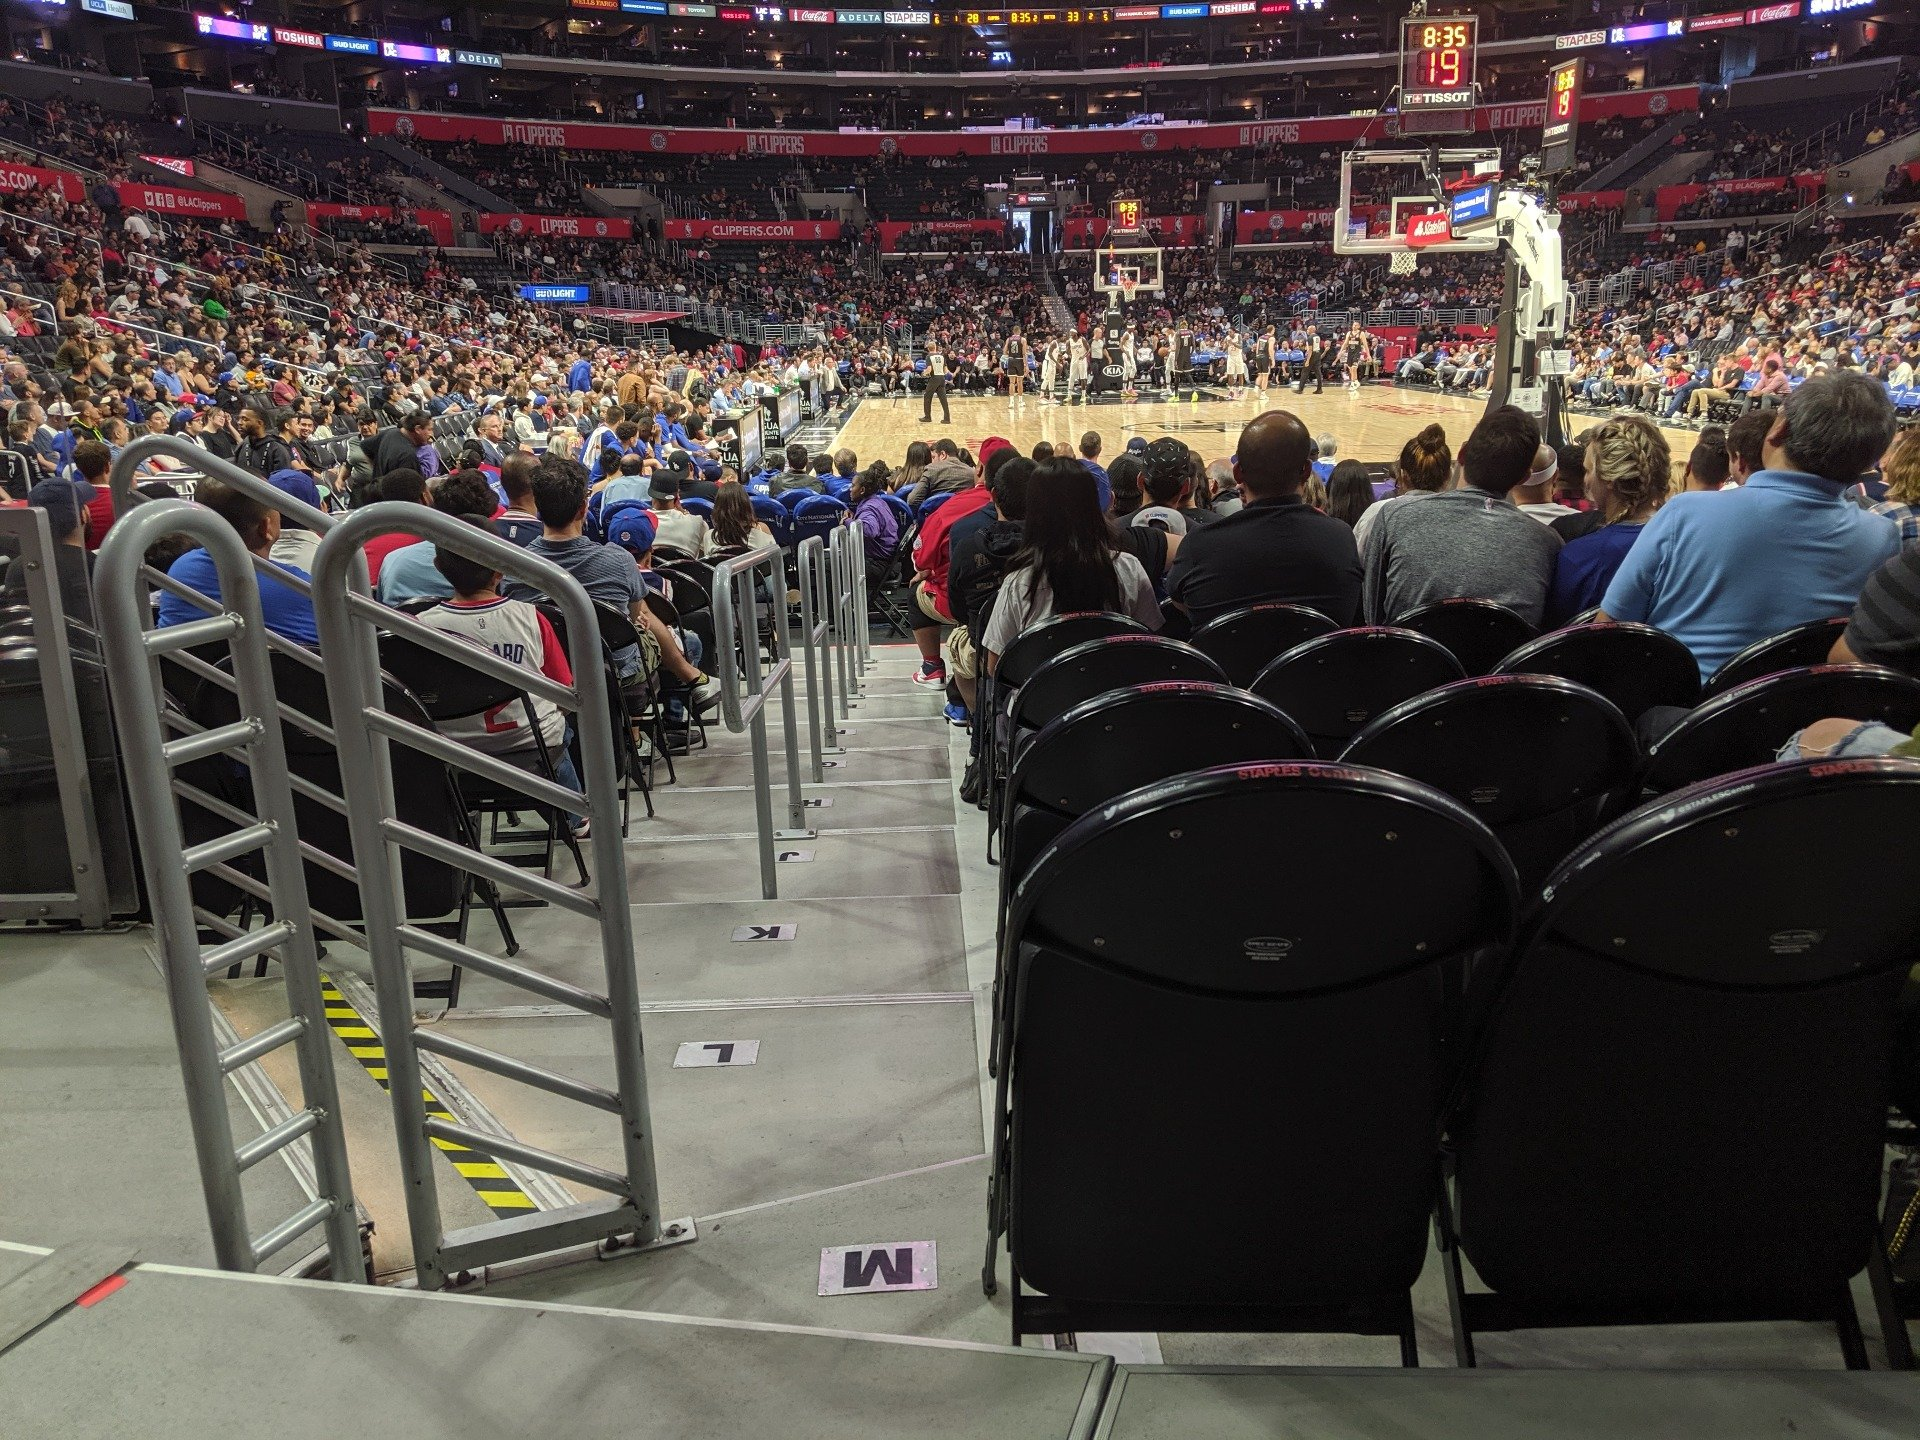 Staples Center Section 115 Row 3 Seat 10